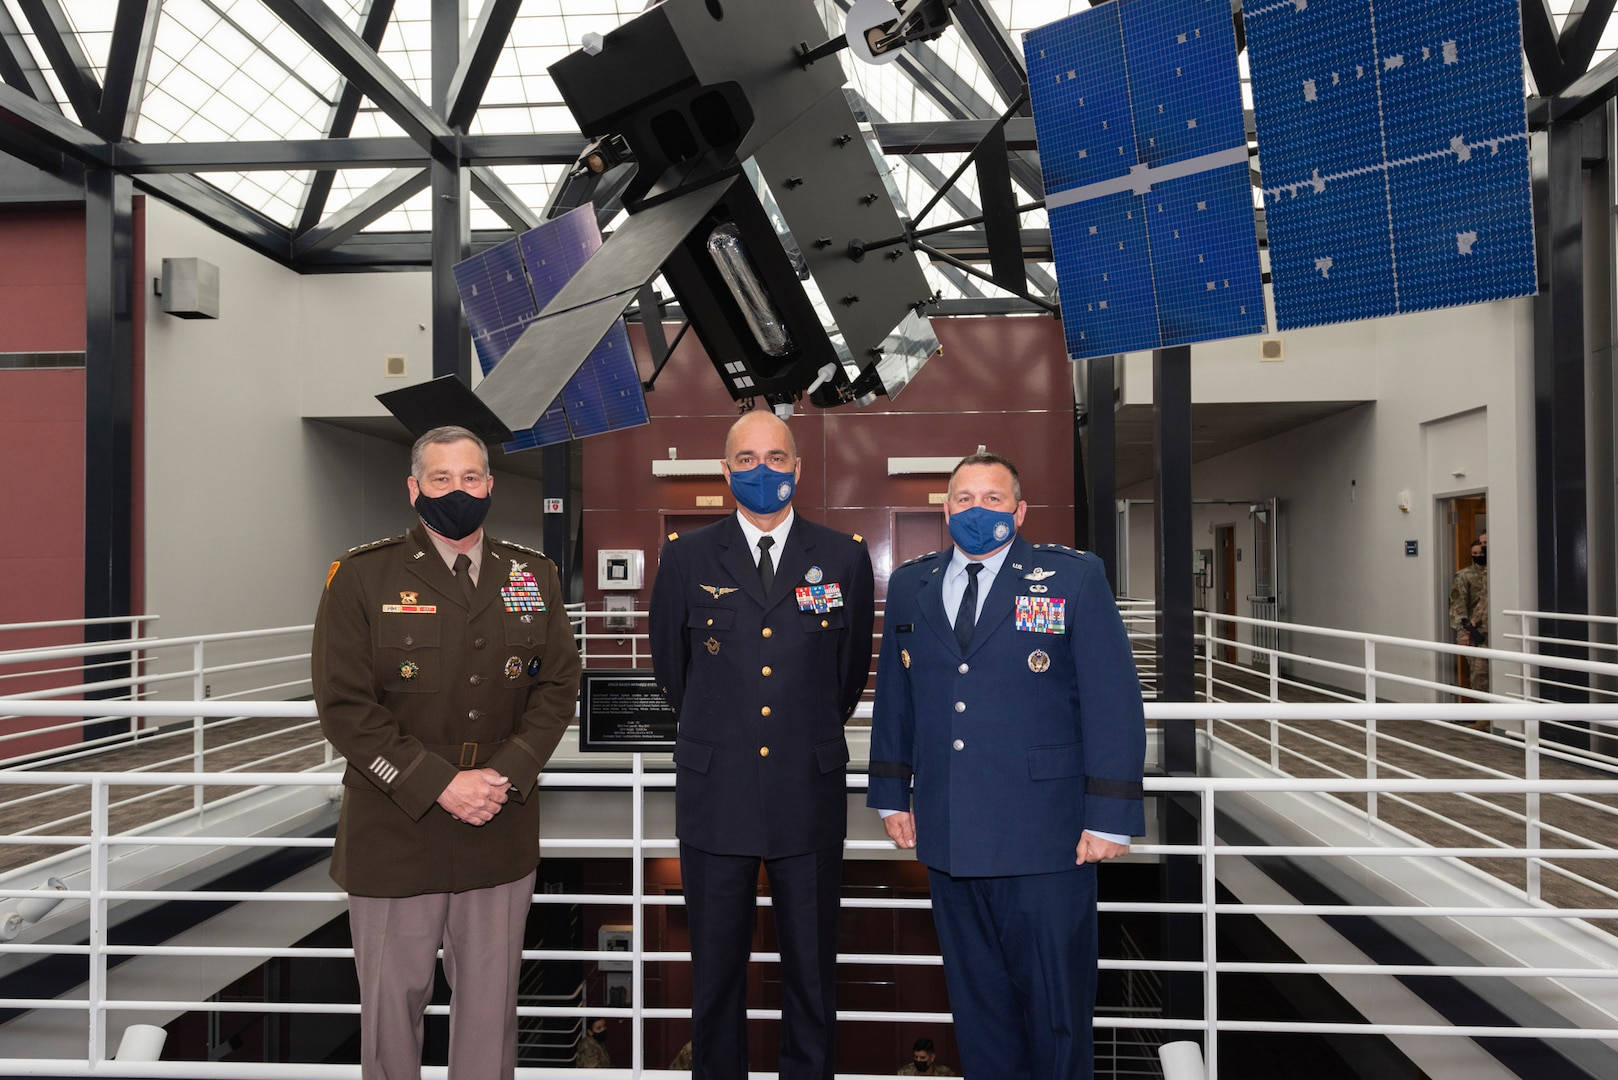 U.S. Army general, French Air Force general and U.S. Air Force general pose for a photo at U.S. Space Command headquarters.